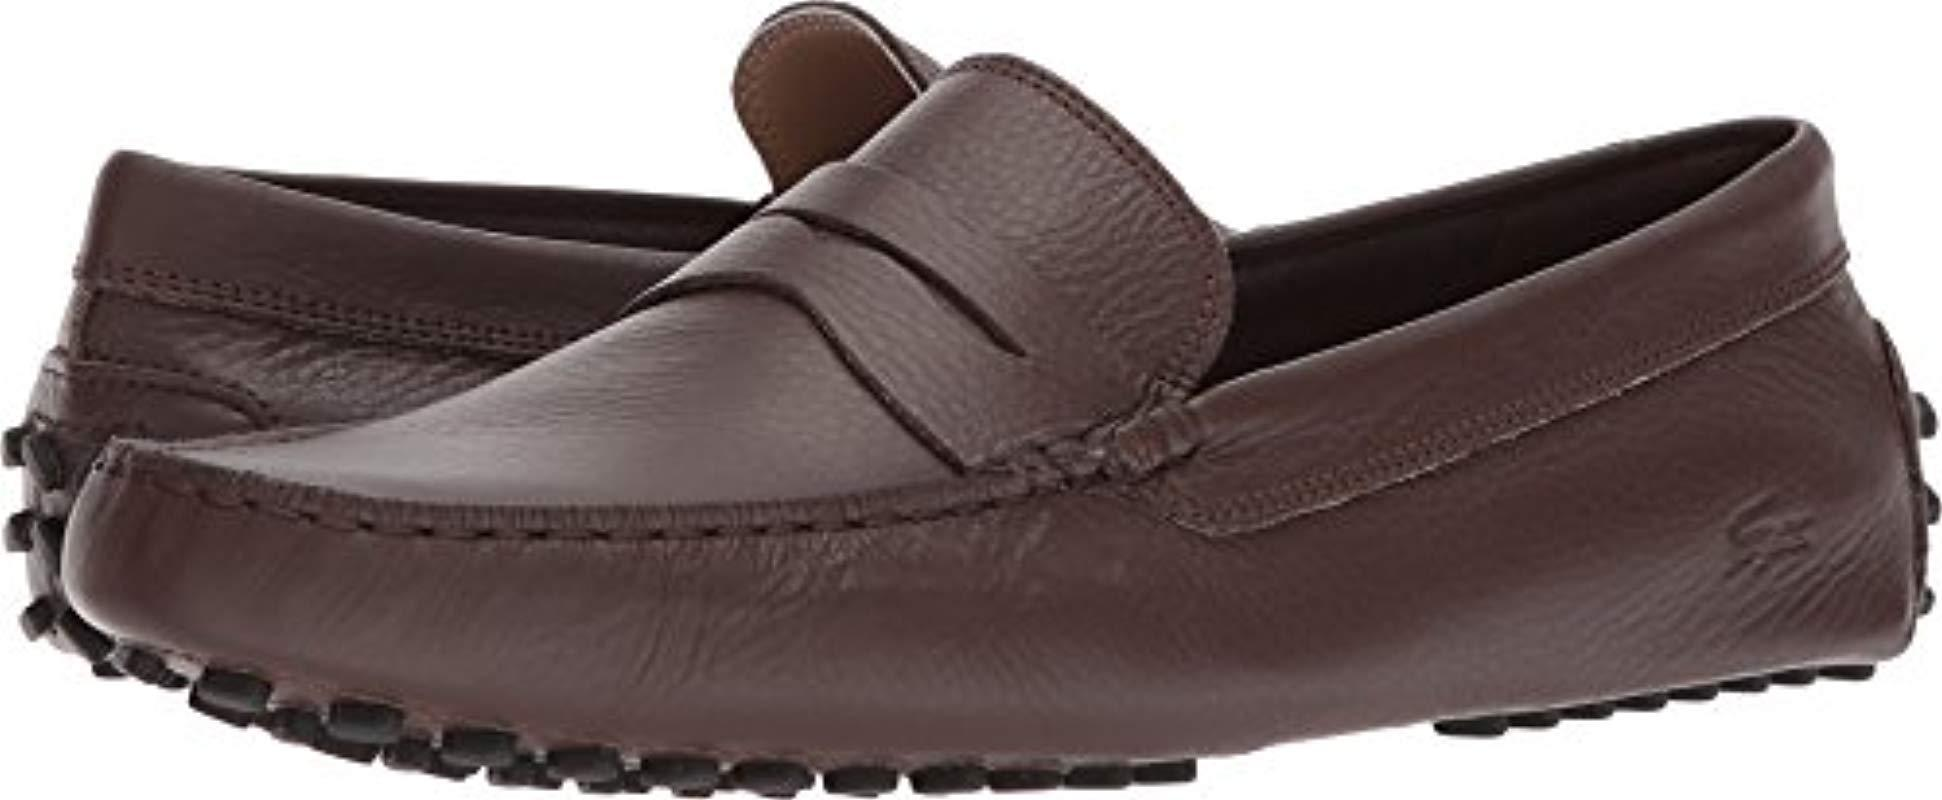 f6ffbe0d6 Lyst - Lacoste Concours 118 1 Driving Style Loafer in Brown for Men